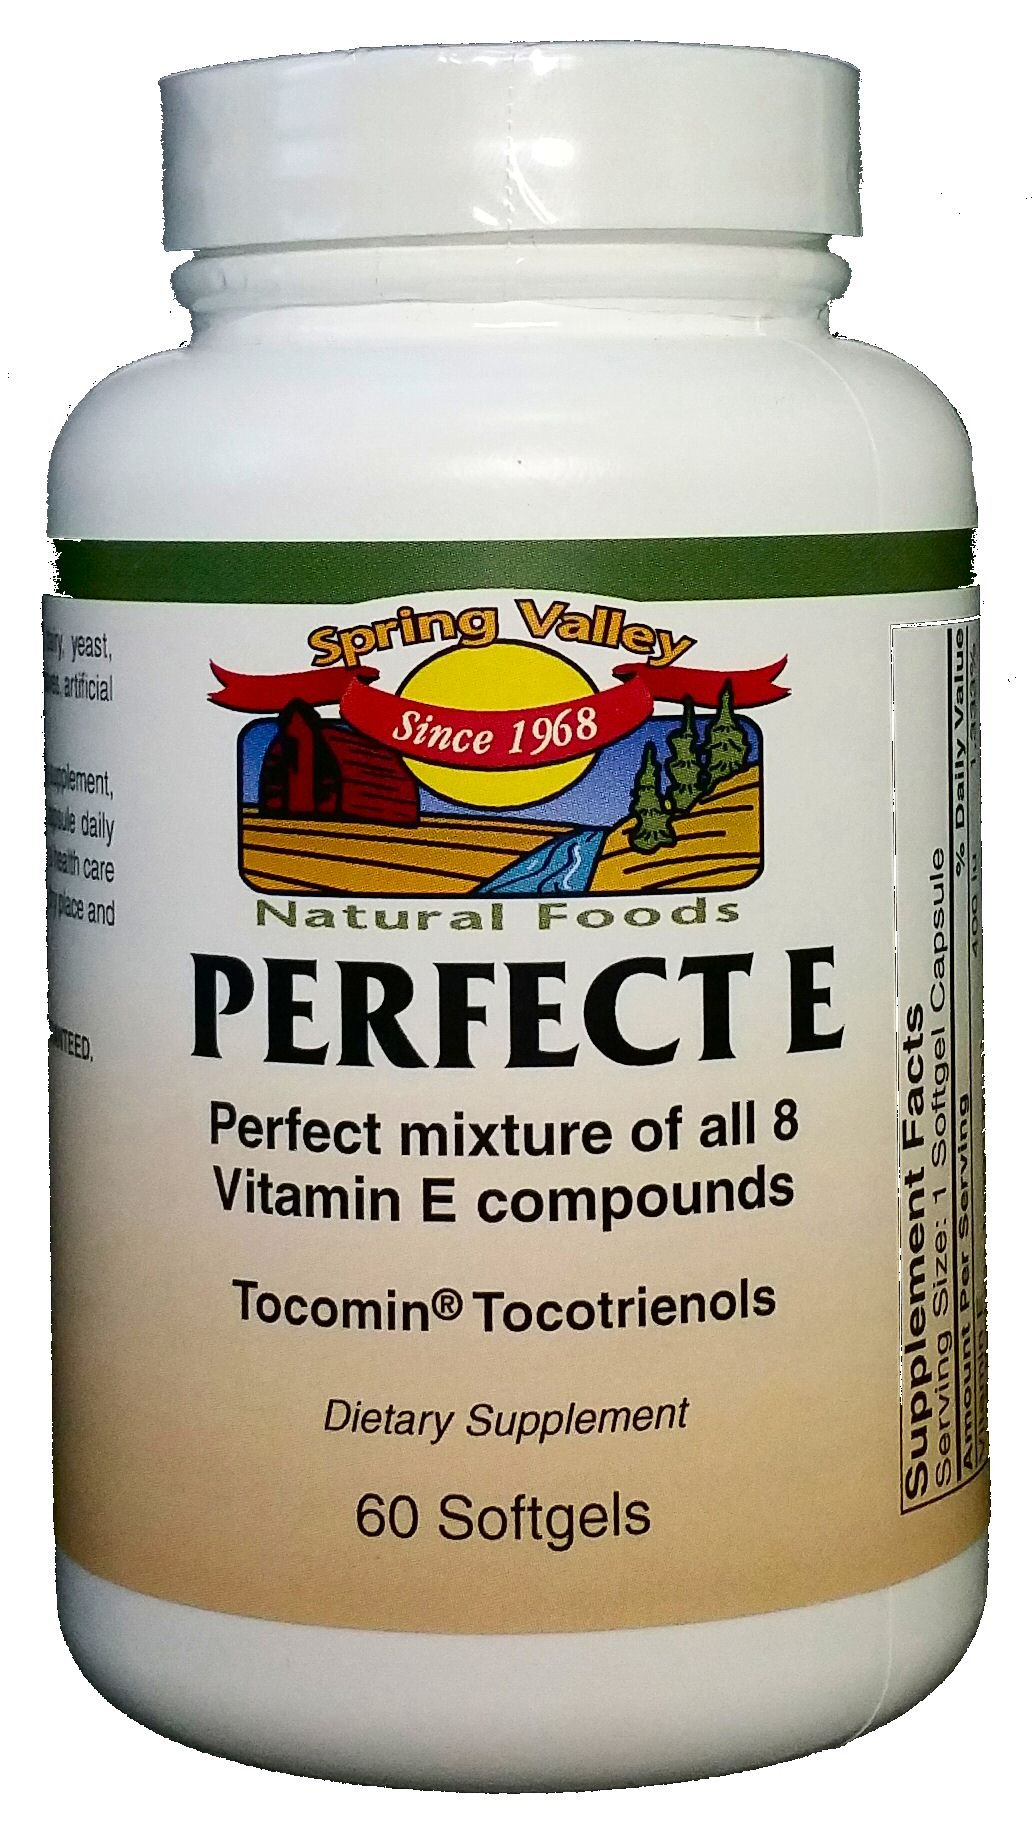 Spring Valley Natural Foods Perfect E 60 Softgels